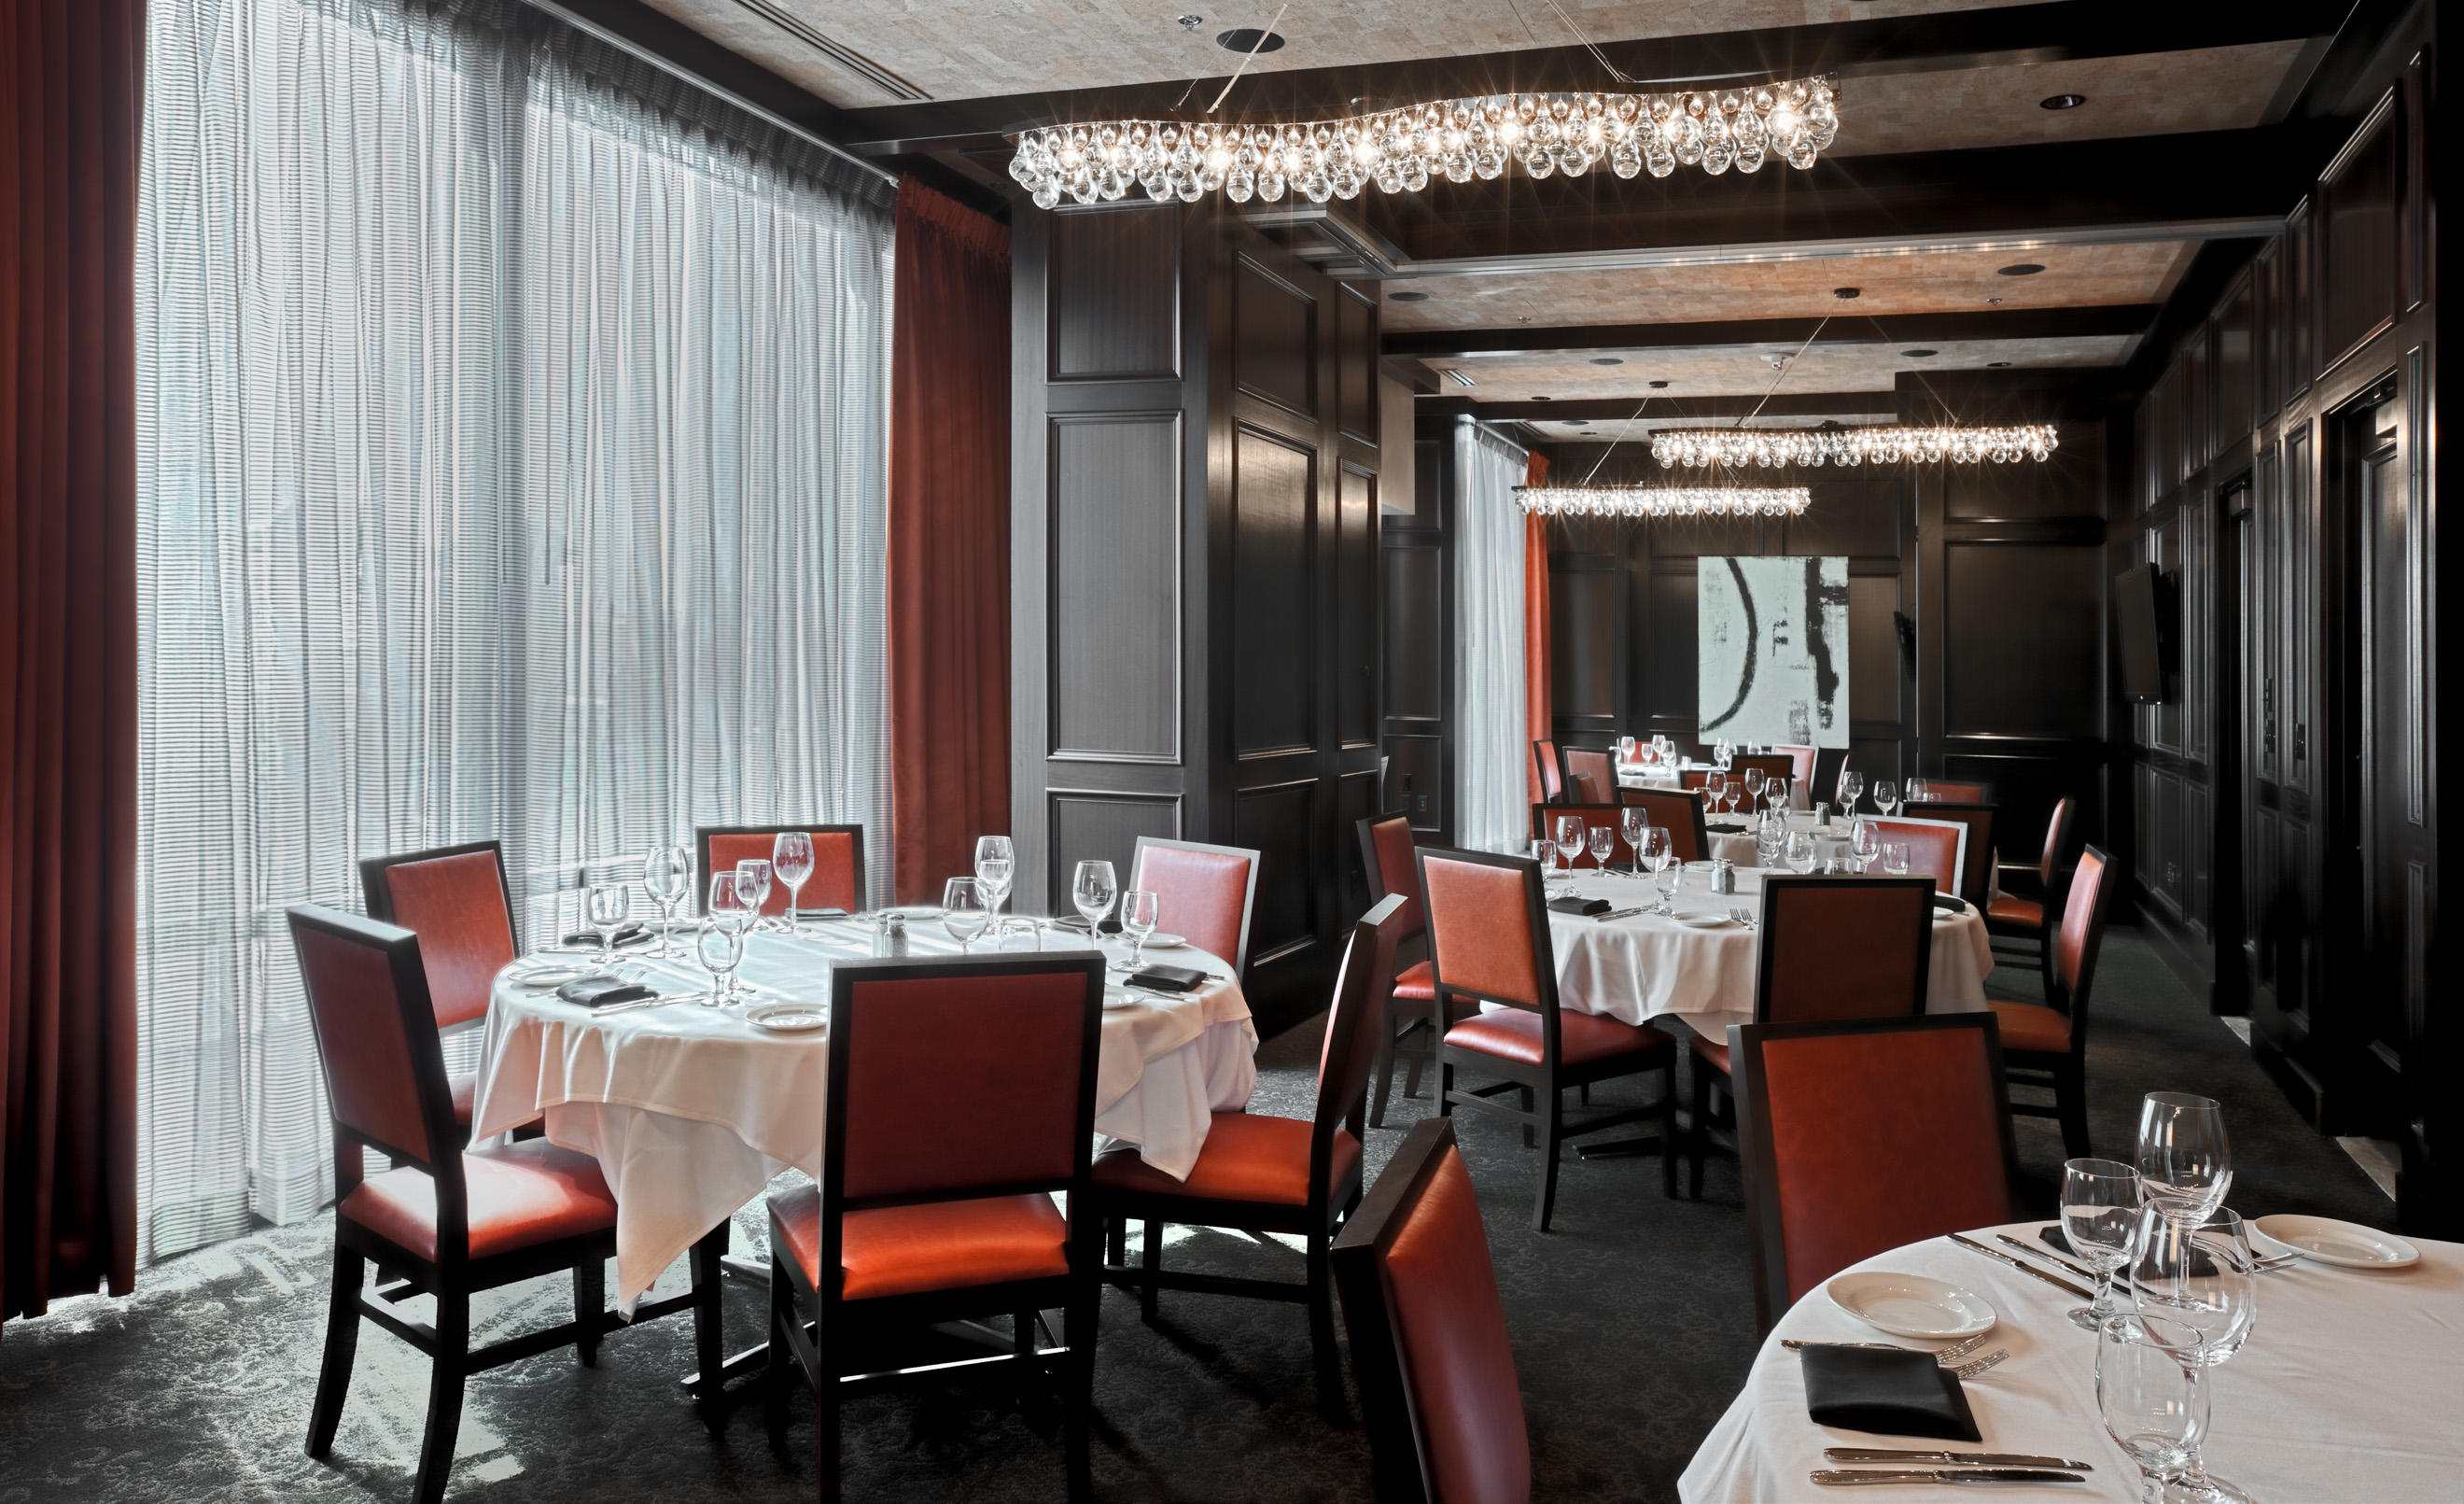 Del Frisco's Double Eagle Steak House Boston (Seaport) Doulos Room private dining room